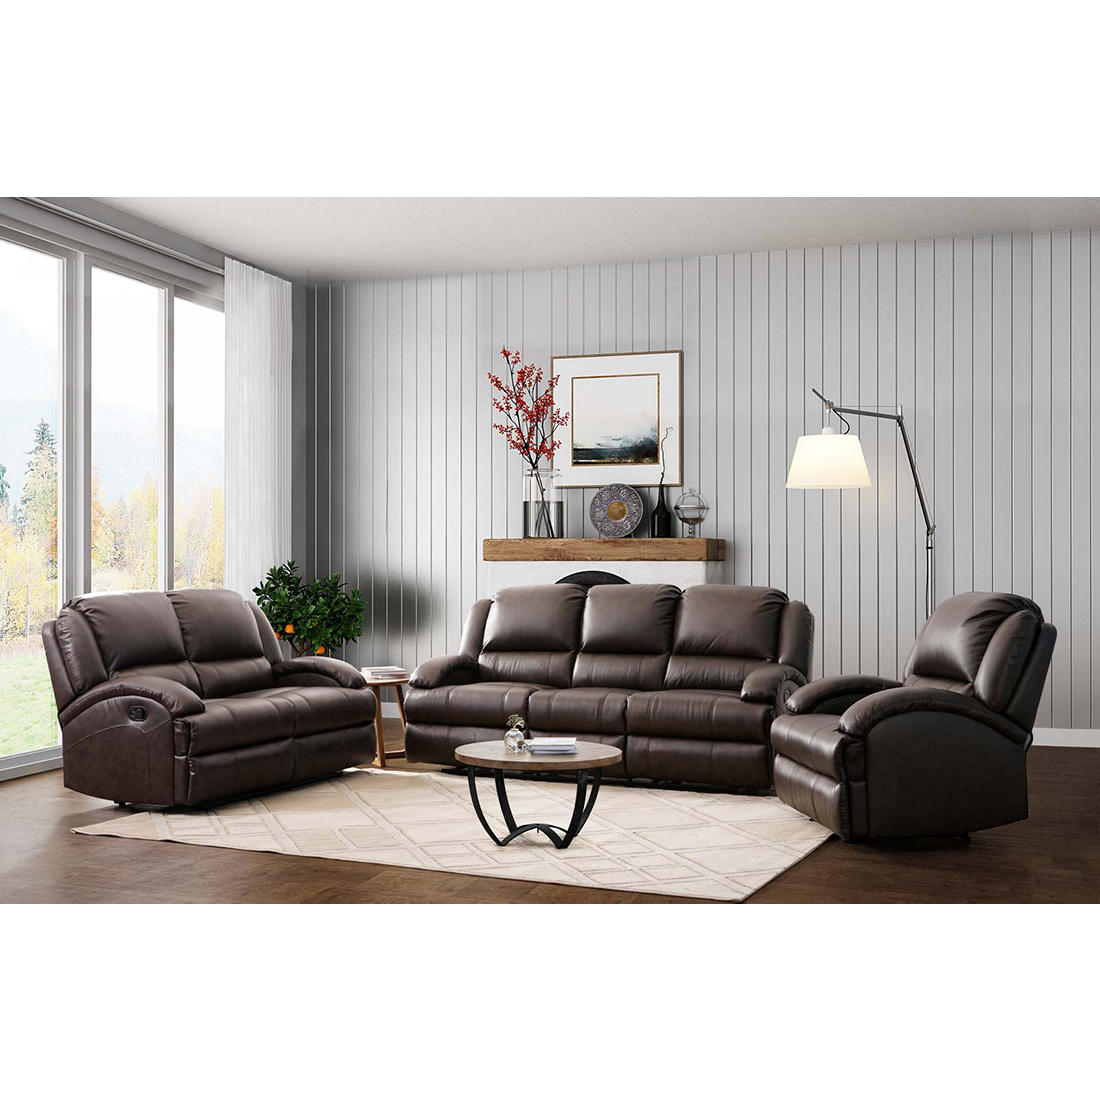 Abbyson Giorgio 3-Pc. Top Grain Leather Reclining Sofa Set